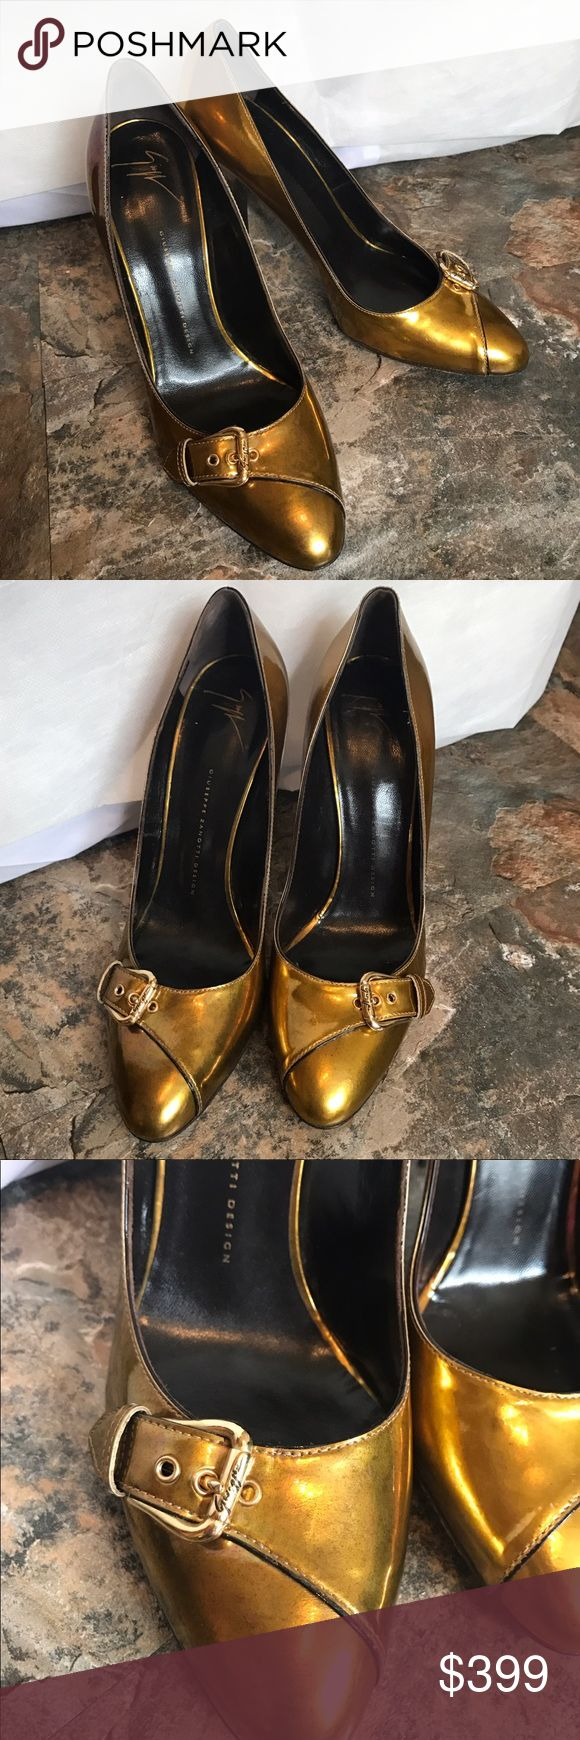 """Giuseppe zanotti design bronze pumps Virtually new only very little wear on bottoms but no where else 3"""" heel these say 40.5 but fit more of a size 9 Giuseppe Zanotti Shoes"""